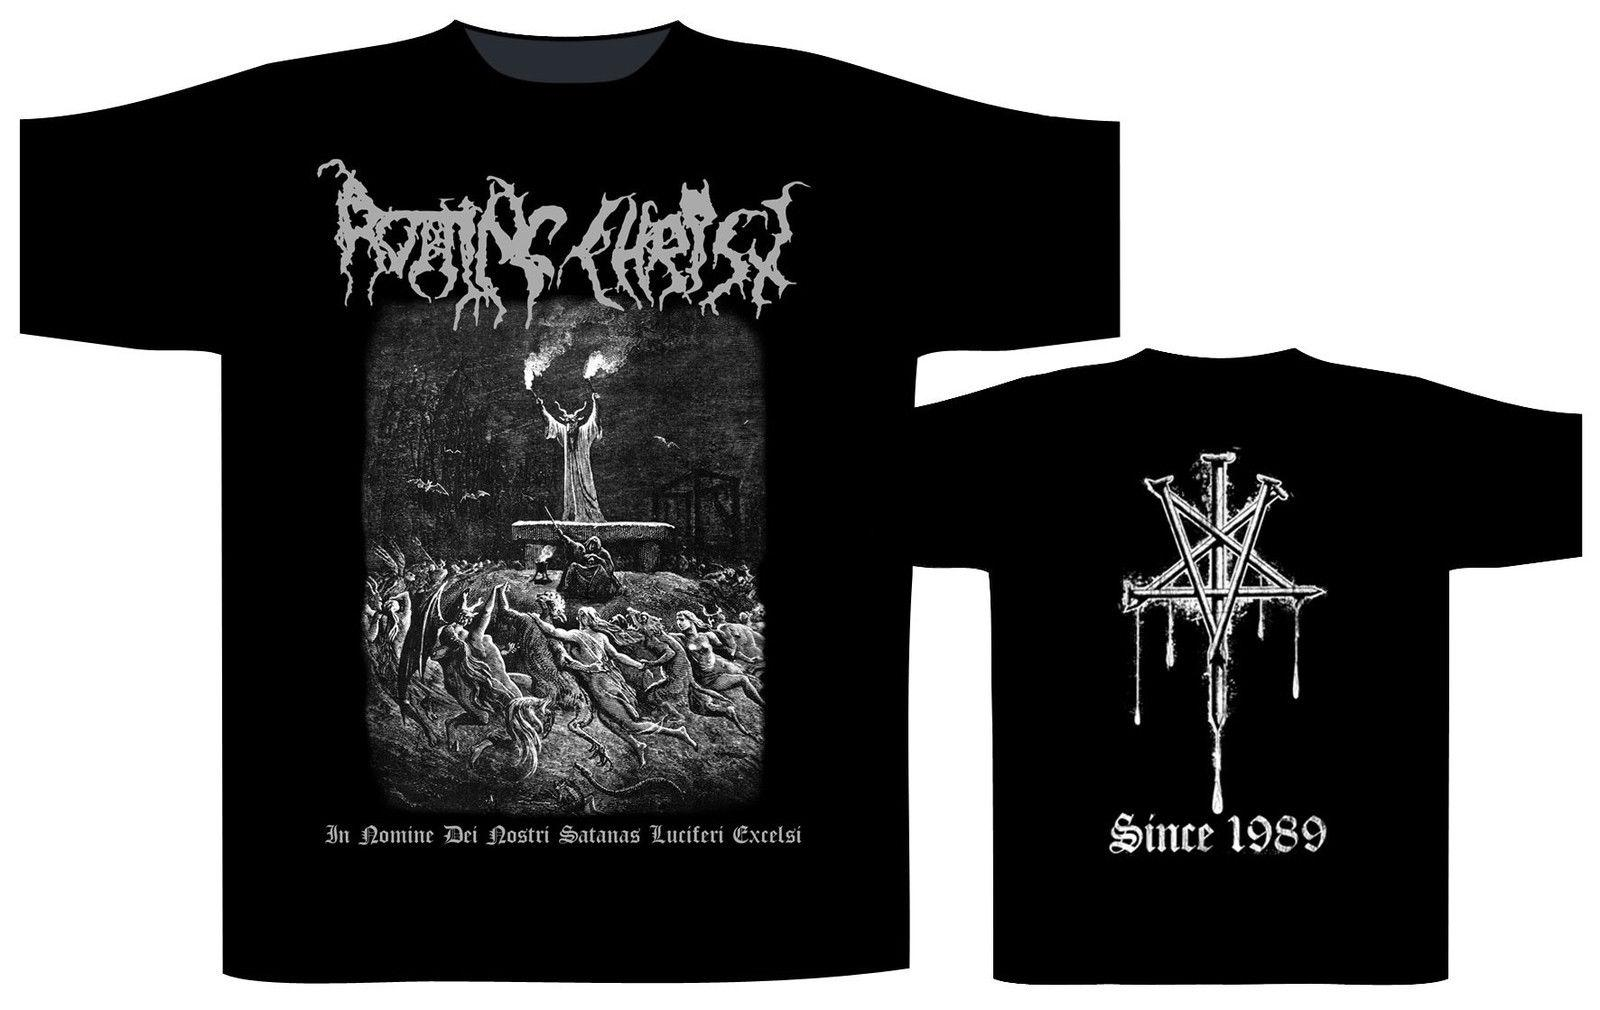 Rotting Christ In Nomine Dei Nostri Shirt XXL T-Shirt Black Metal Offcl Tshirt New Summer Style top tee